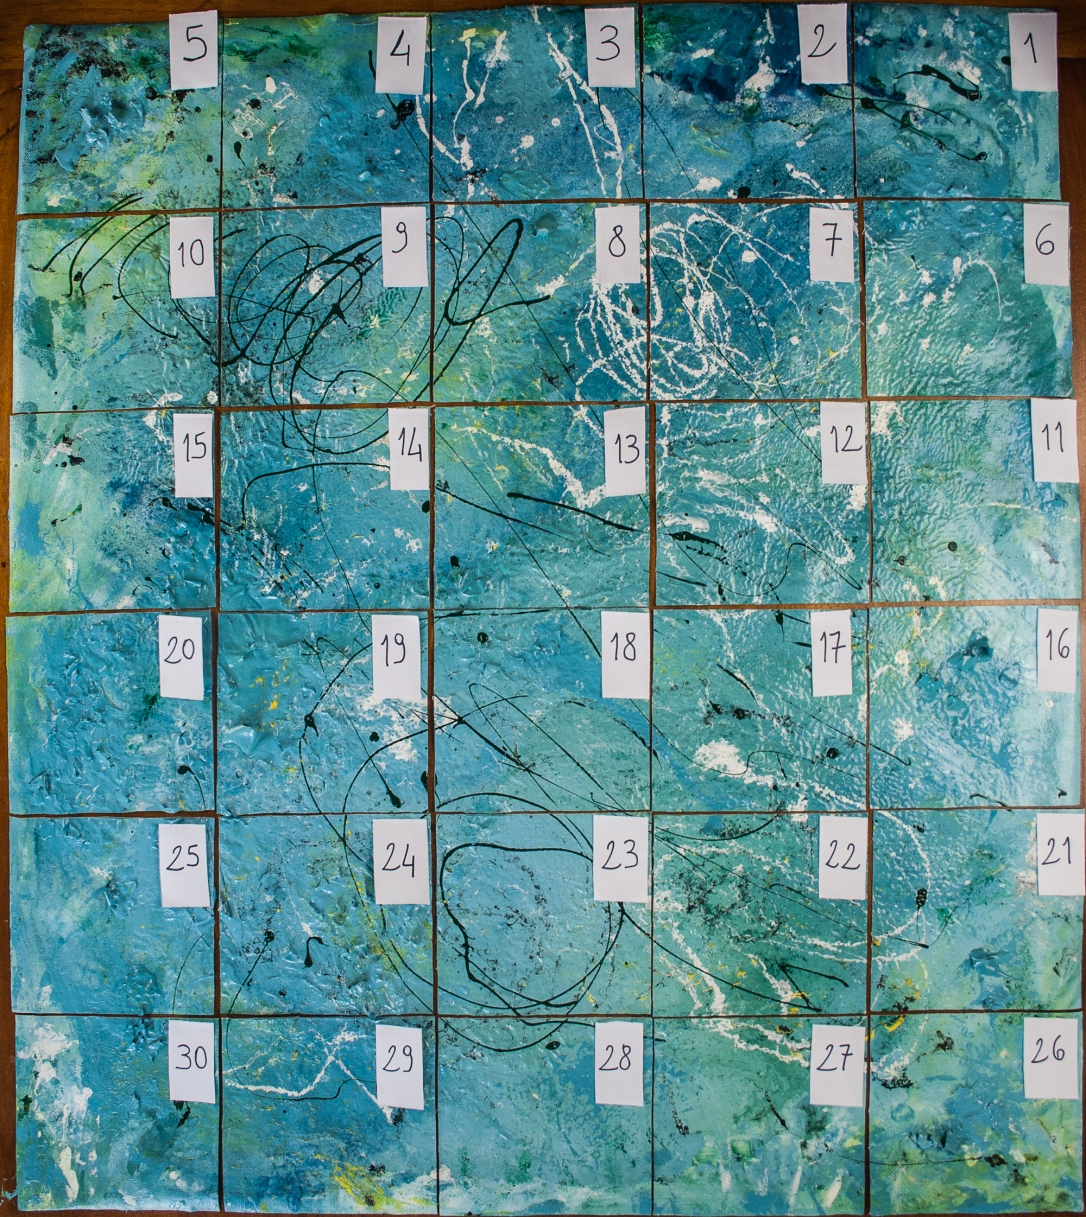 pieces paintintg grid